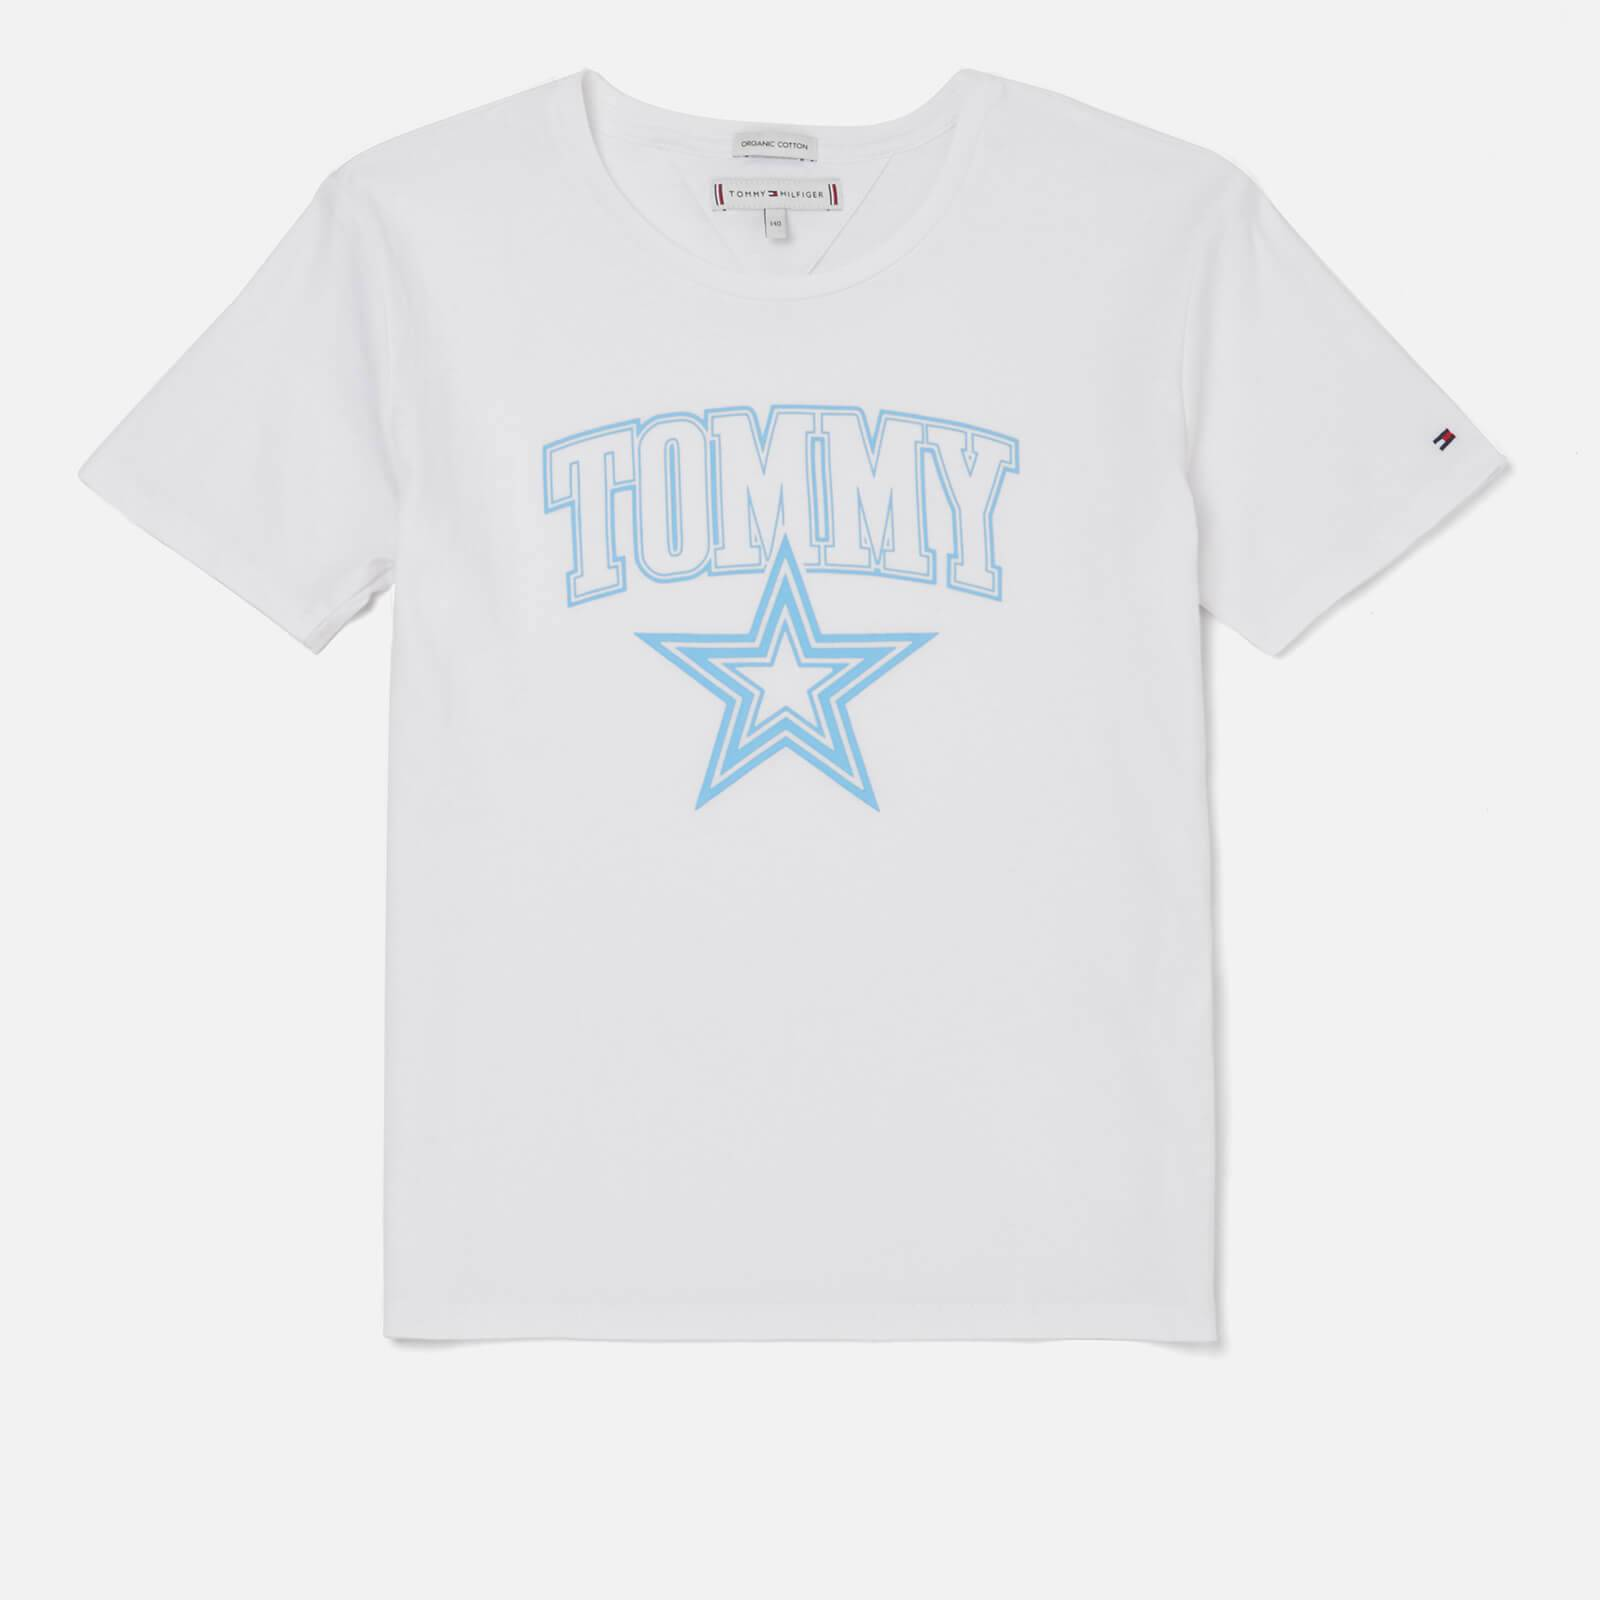 Tommy Hilfiger Girls' Essential Tommy Star T-Shirt - Bright White - 6 Years - White